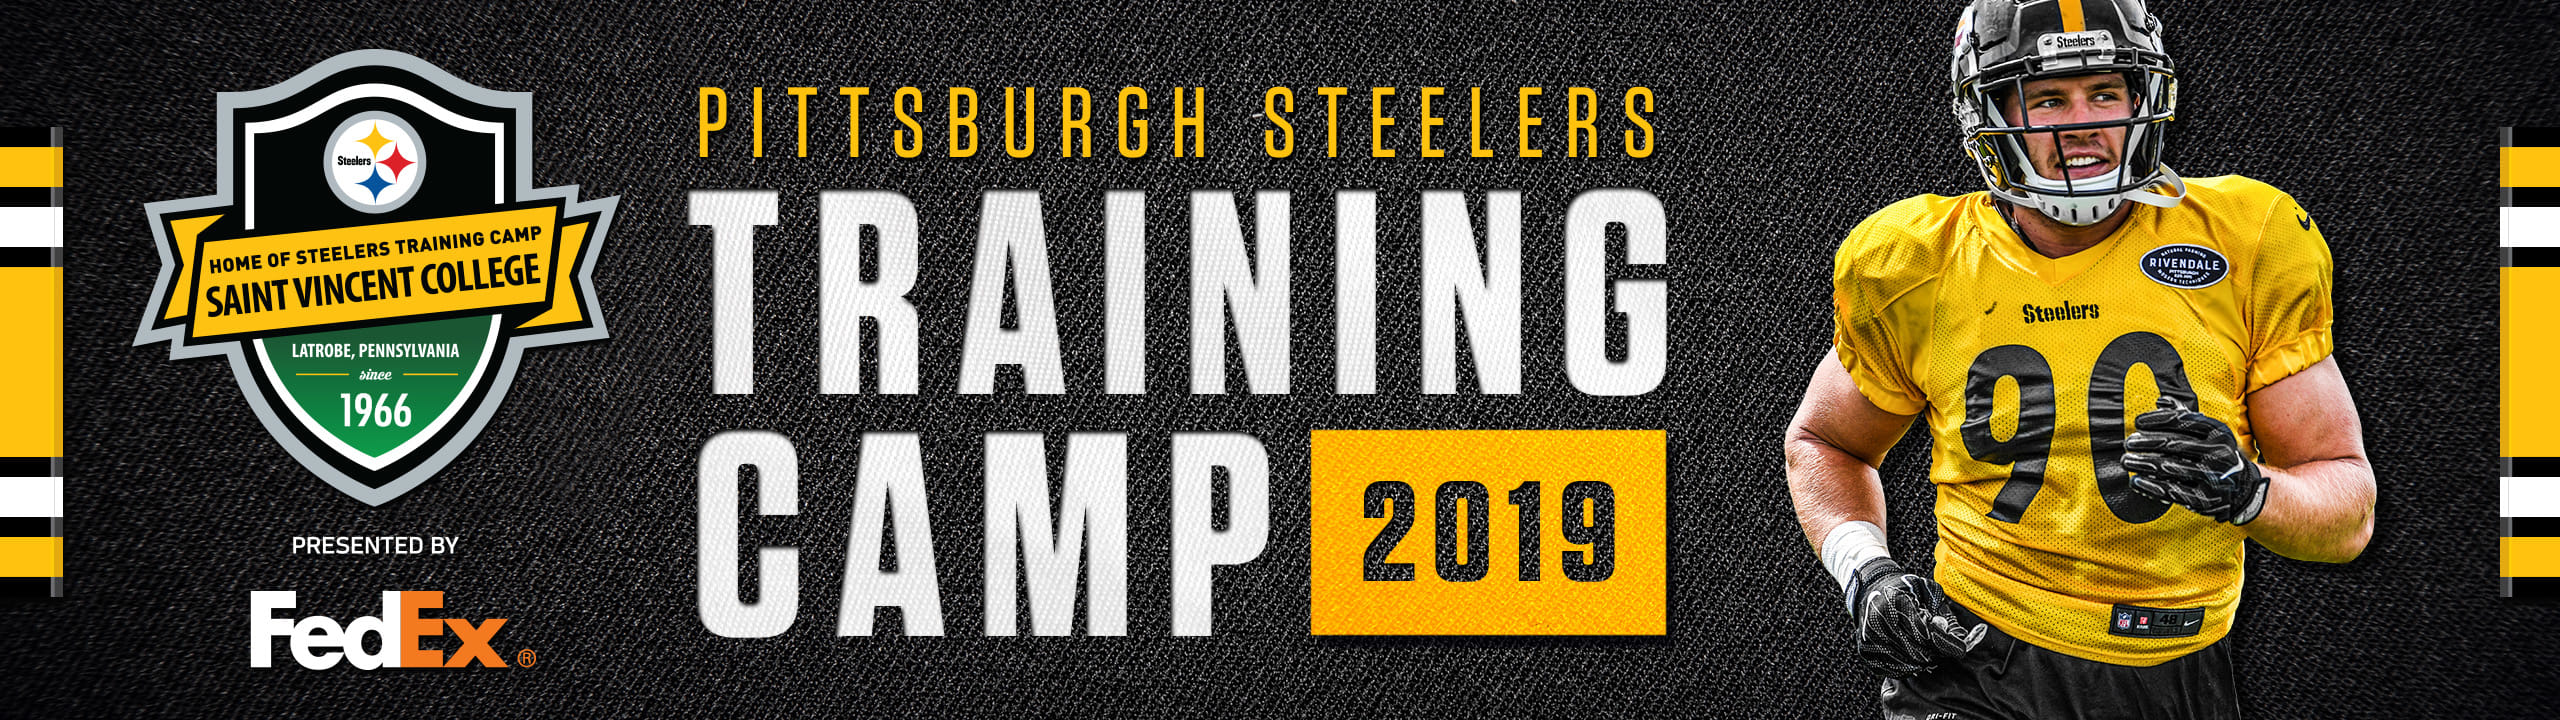 Pittsburgh steelers training camp 2019